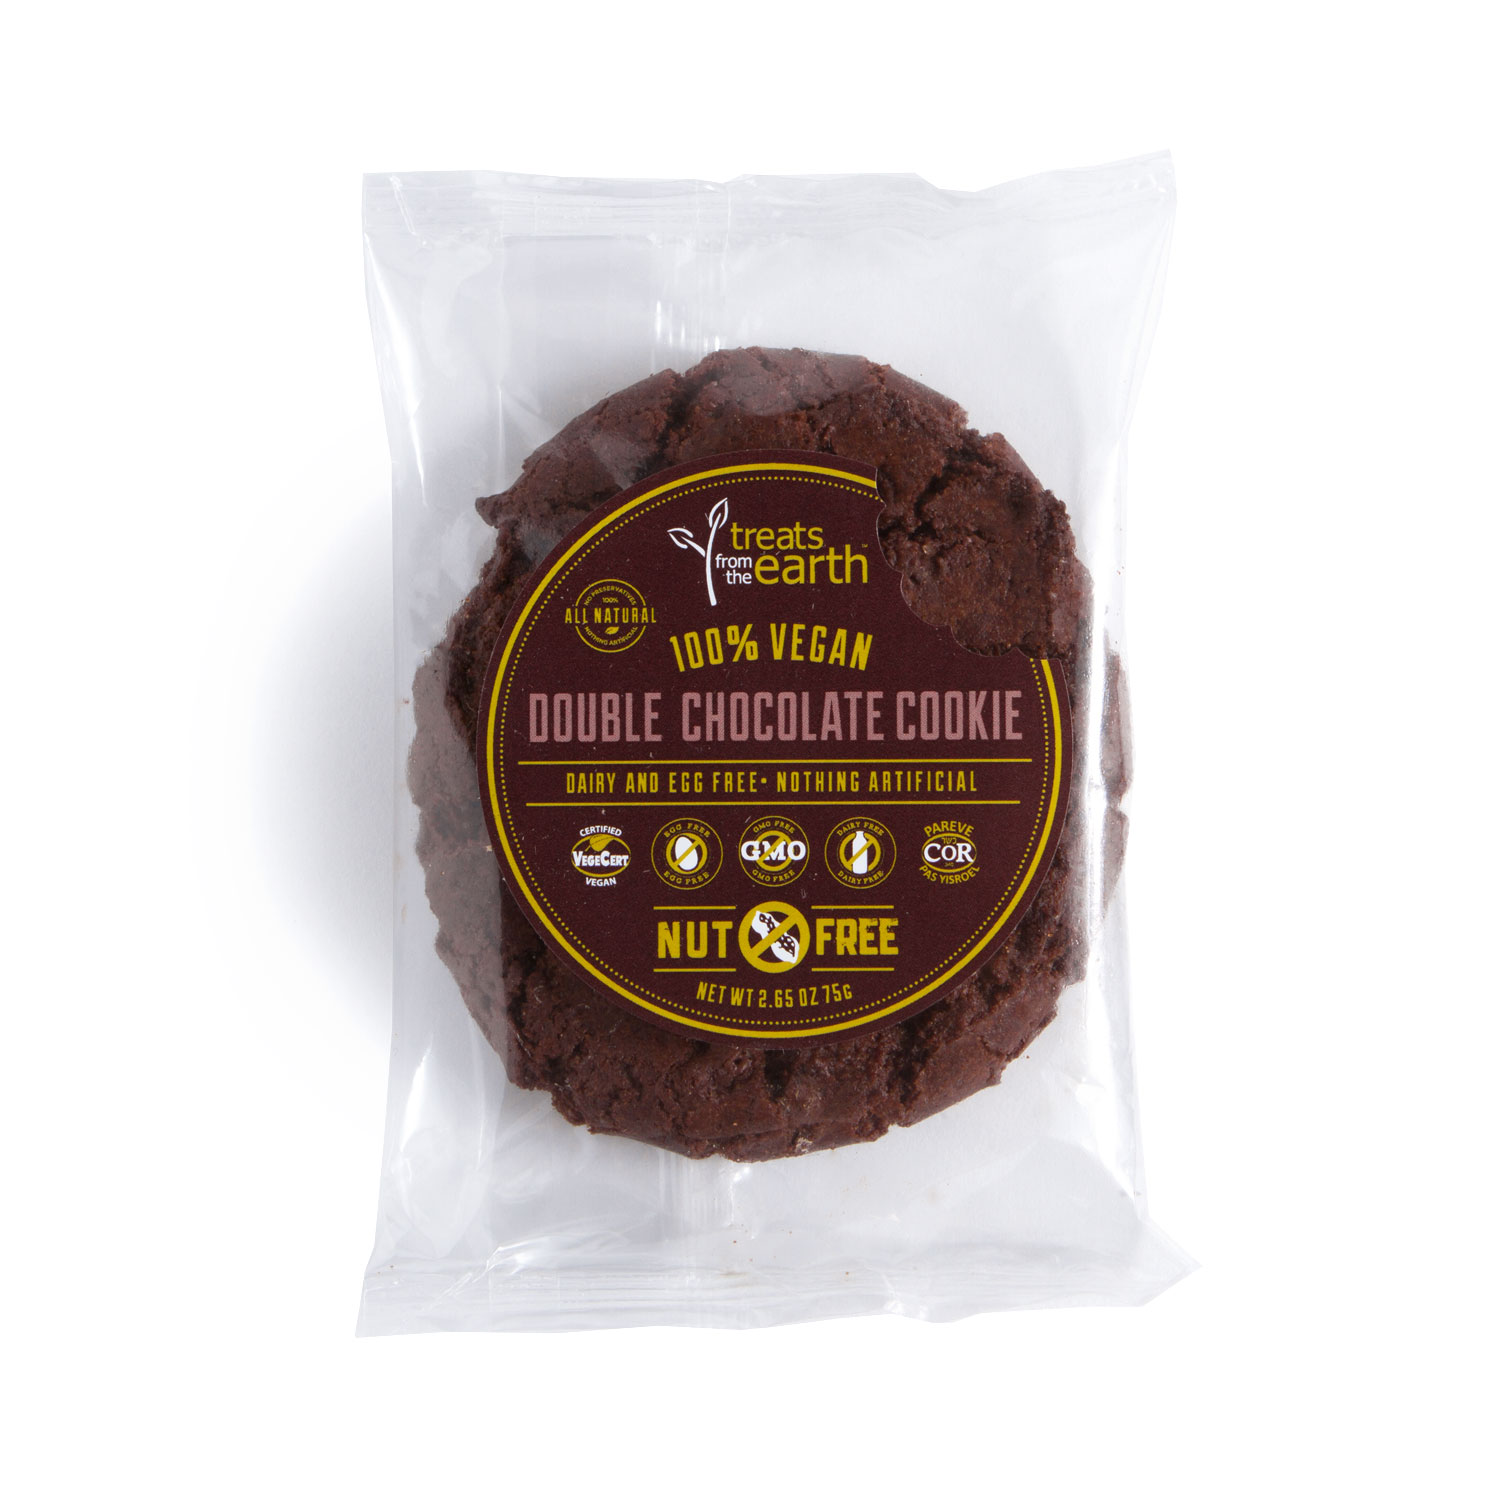 TFTE - NF Double Chocolate Cookie wrapped